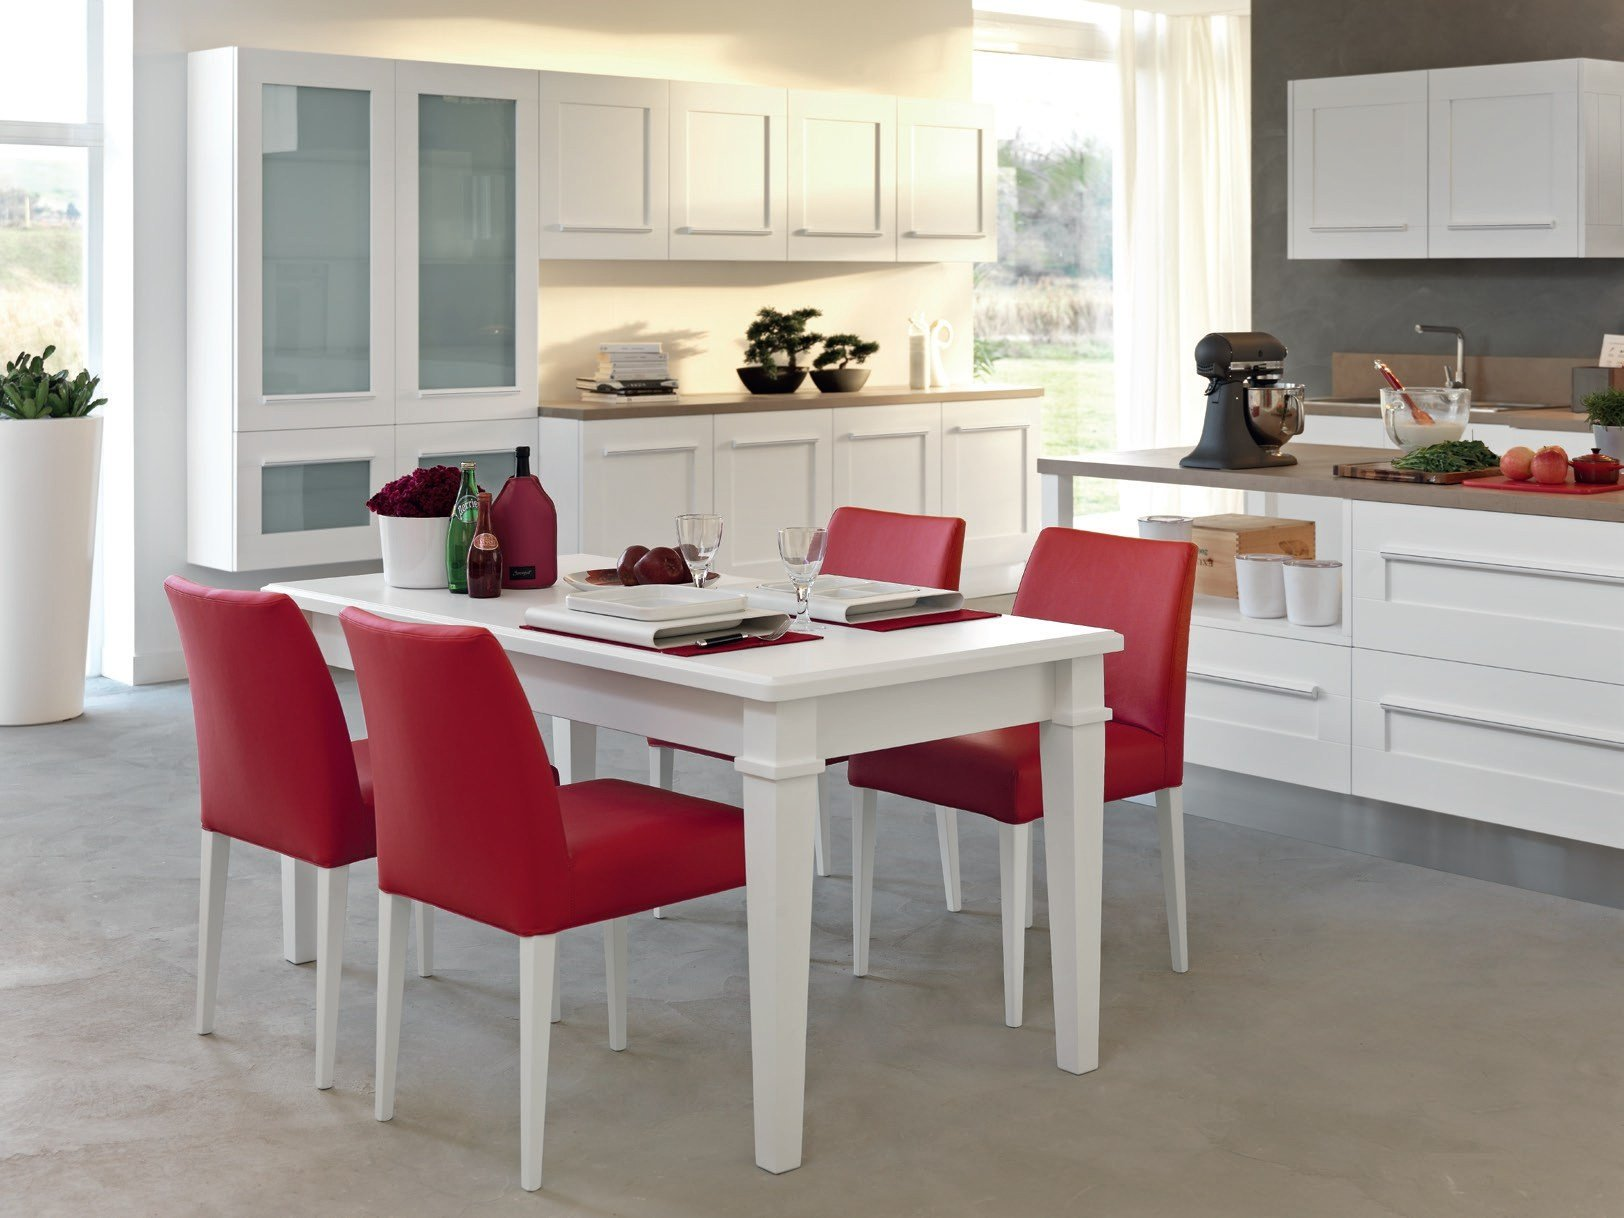 gallery kitchen with island by cucine lube